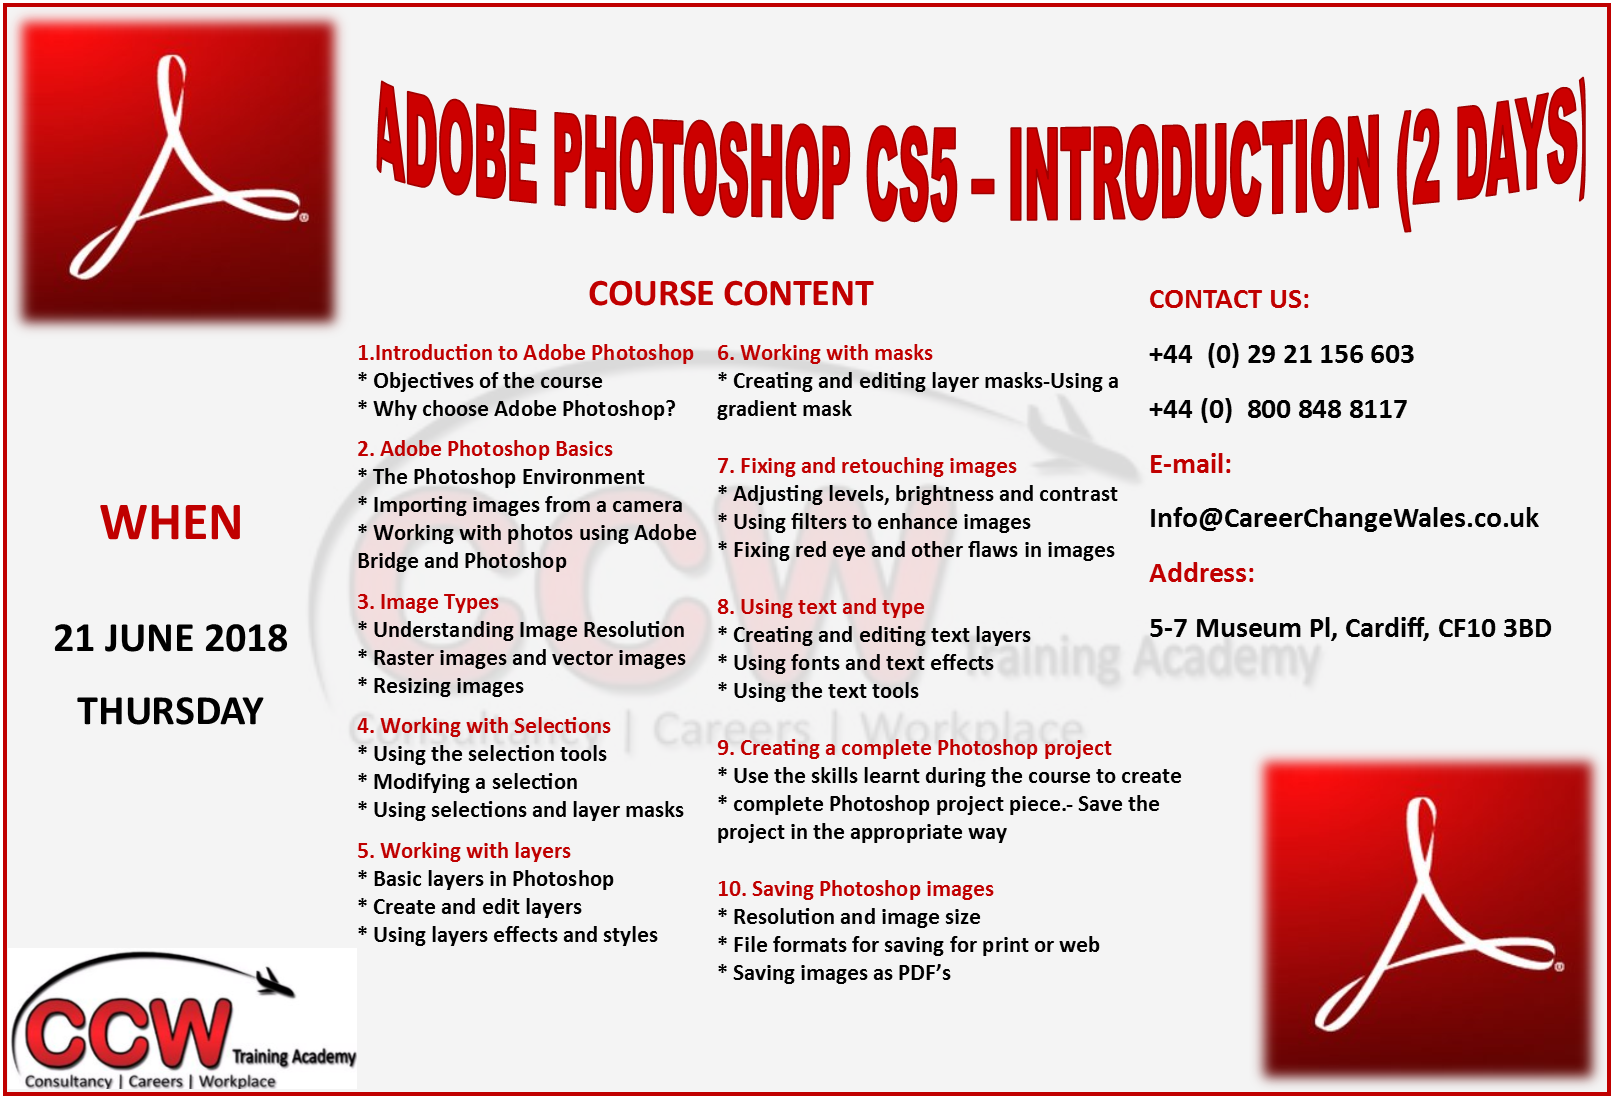 Adobe photoshop cs5 introduction upcoming excel courses baditri Images